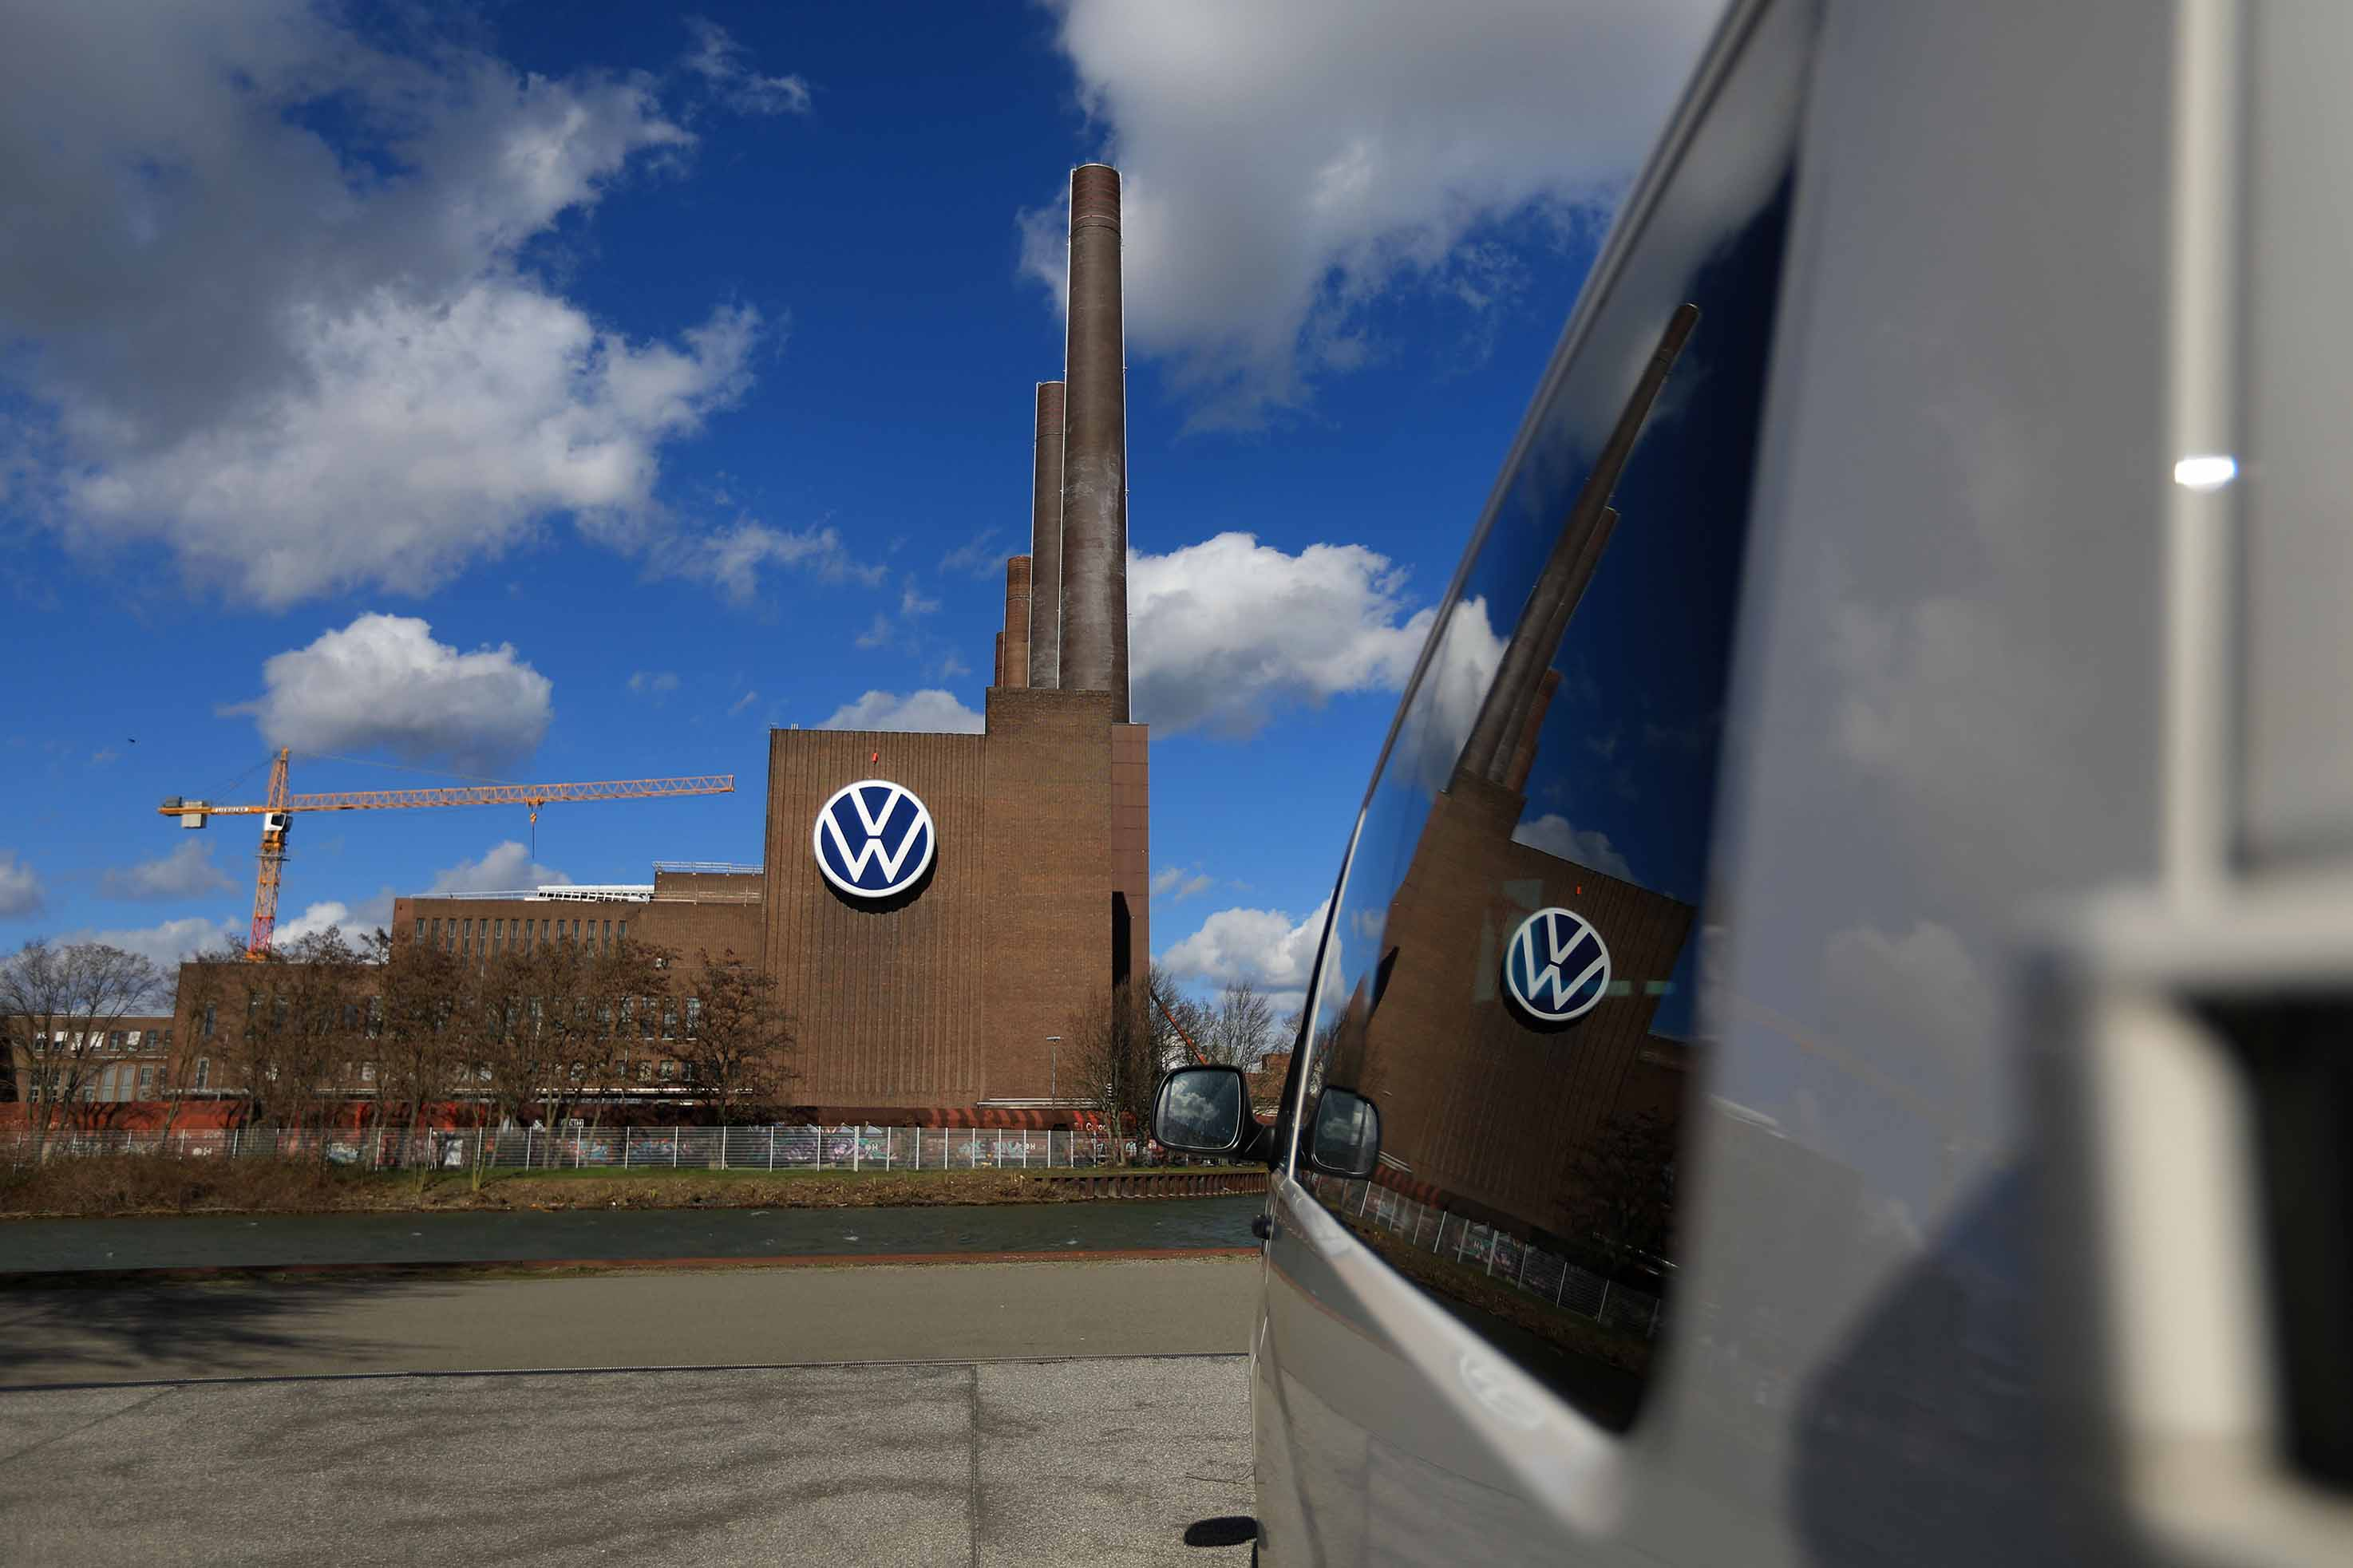 The Volkswagen AG (VW) logo sits on display at the automaker's headquarters in Wolfsburg, Germany, on March 12.